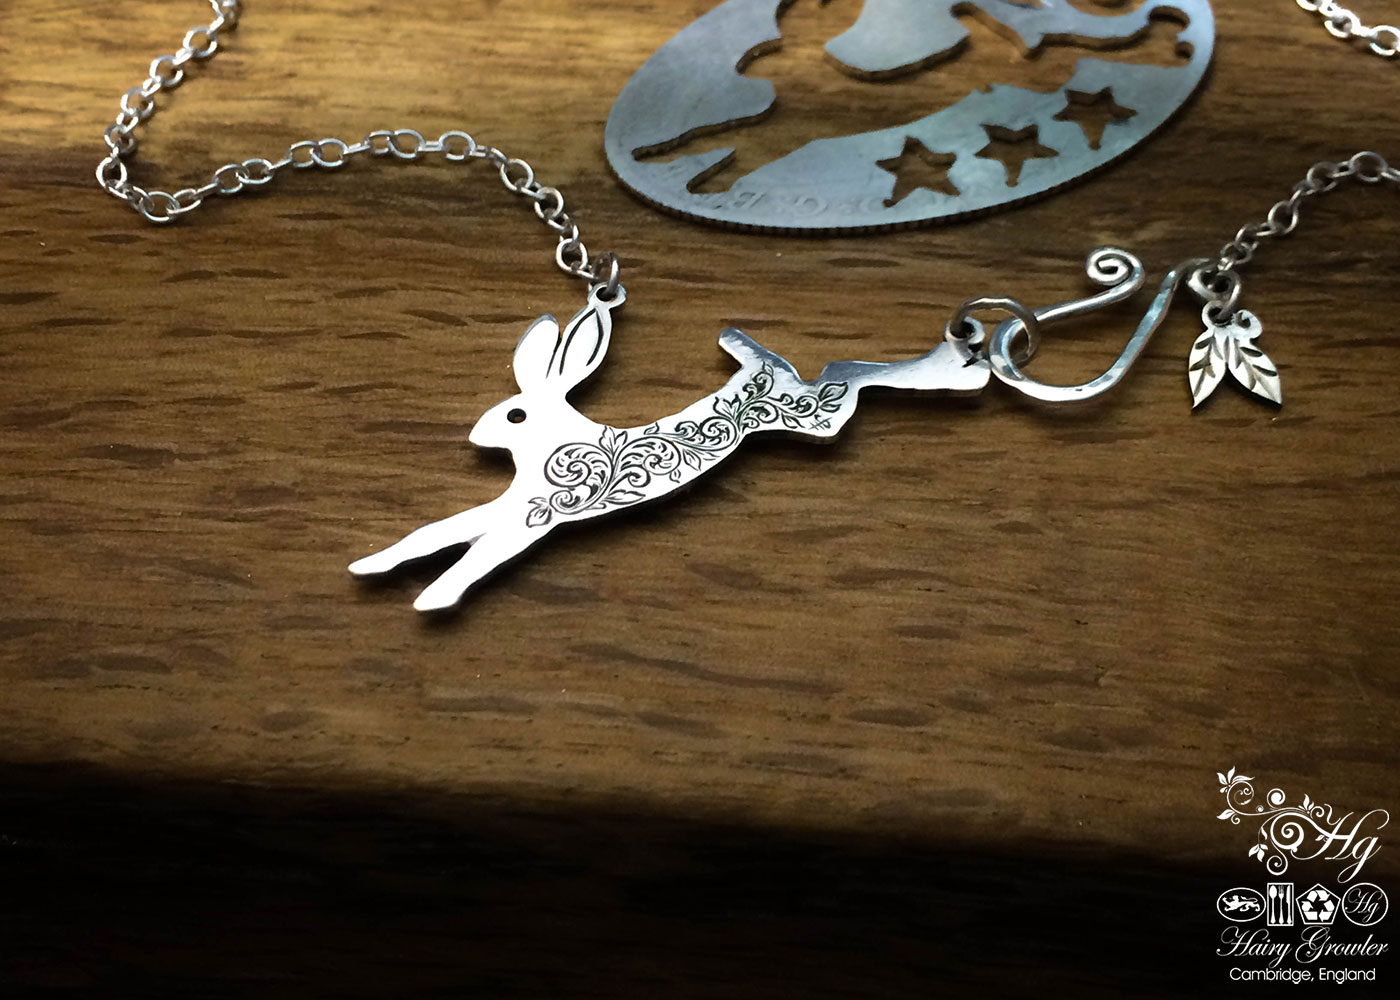 Handmade and upcycled sterling silver magical leaping hare necklace